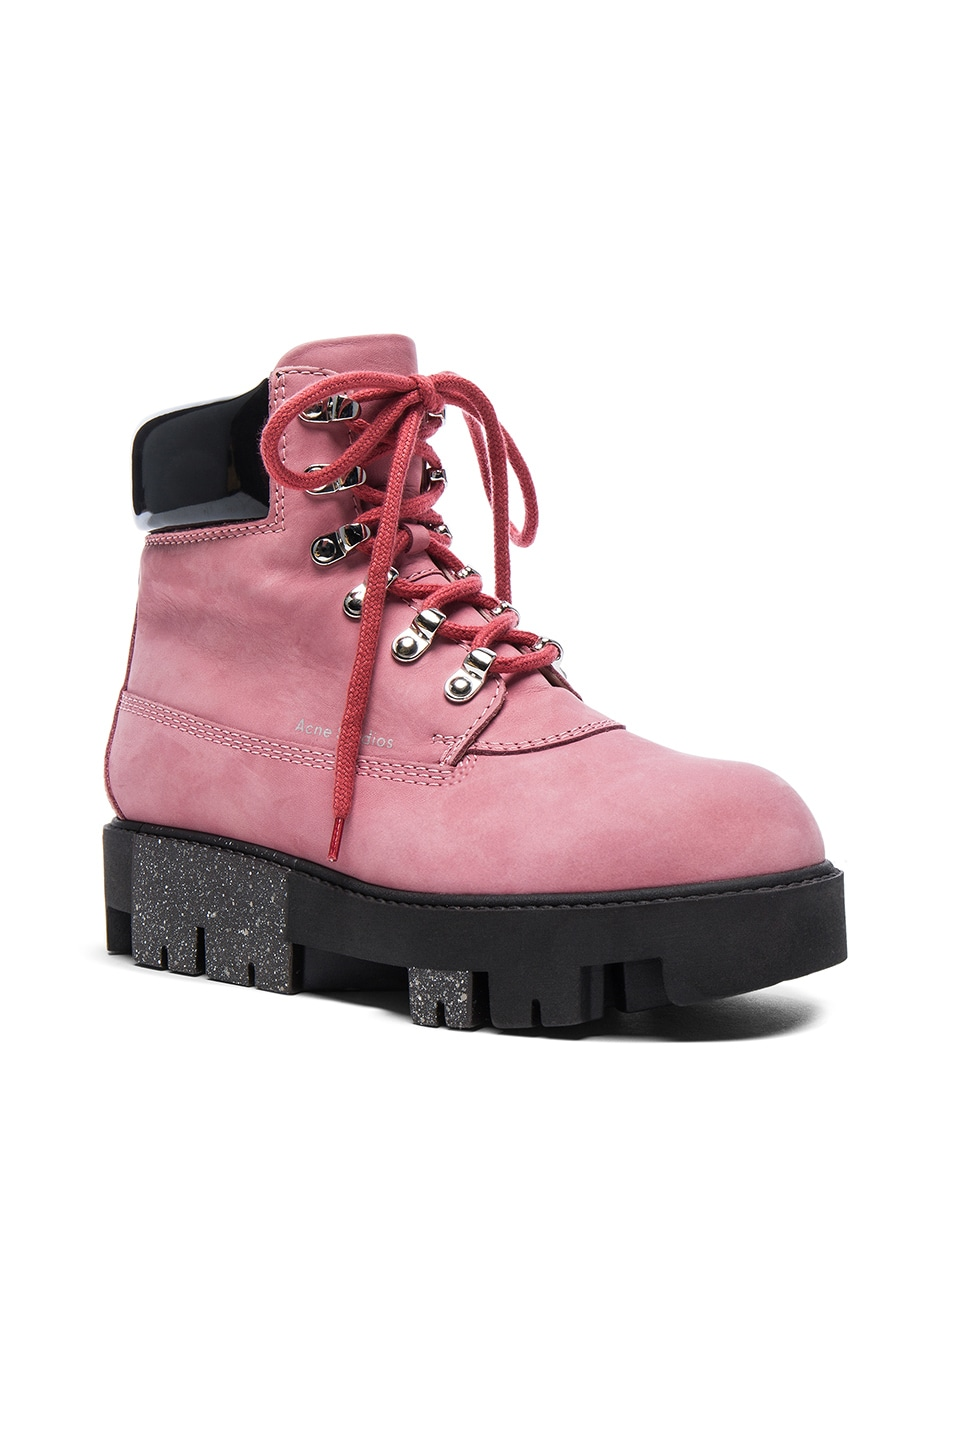 Image 2 of Acne Studios Leather Telde Boots in Bubble Pink & Black